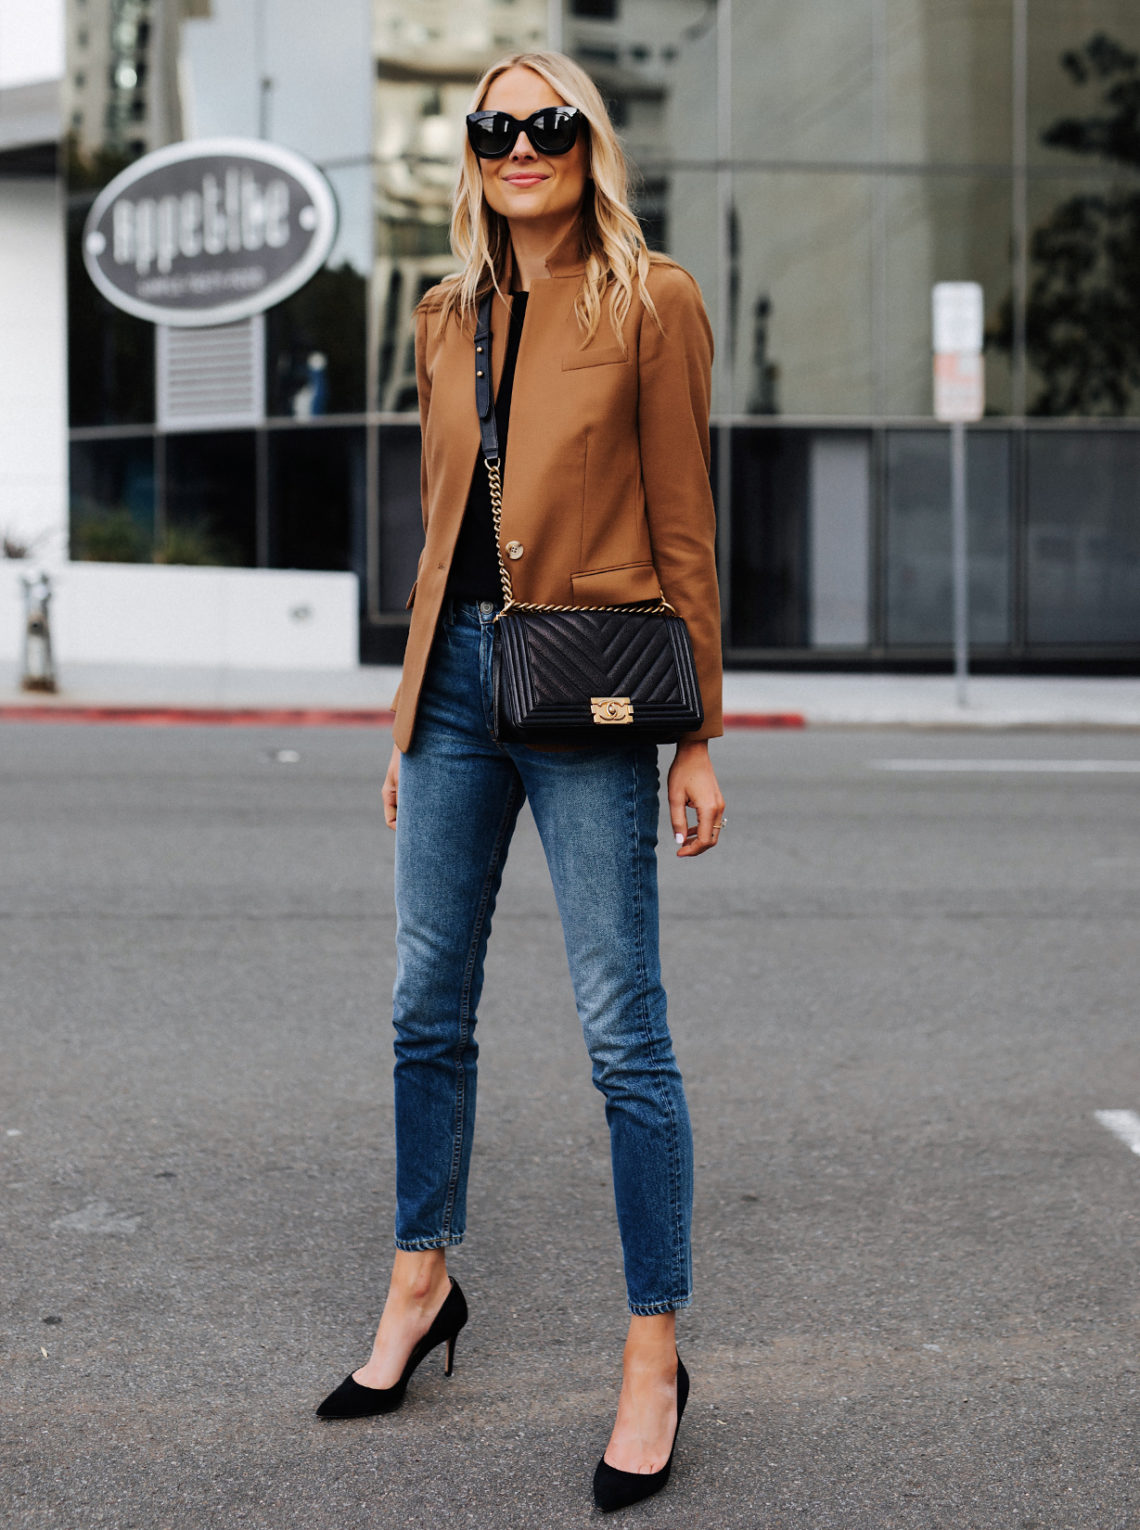 Blonde Woman Wearing Camel Blazer Denim Skinny Jeans Black Pumps eBay Authenticate Chanel Black Boy Bag Featured Image Fashion Jackson San Diego Fashion Blogger Street Style